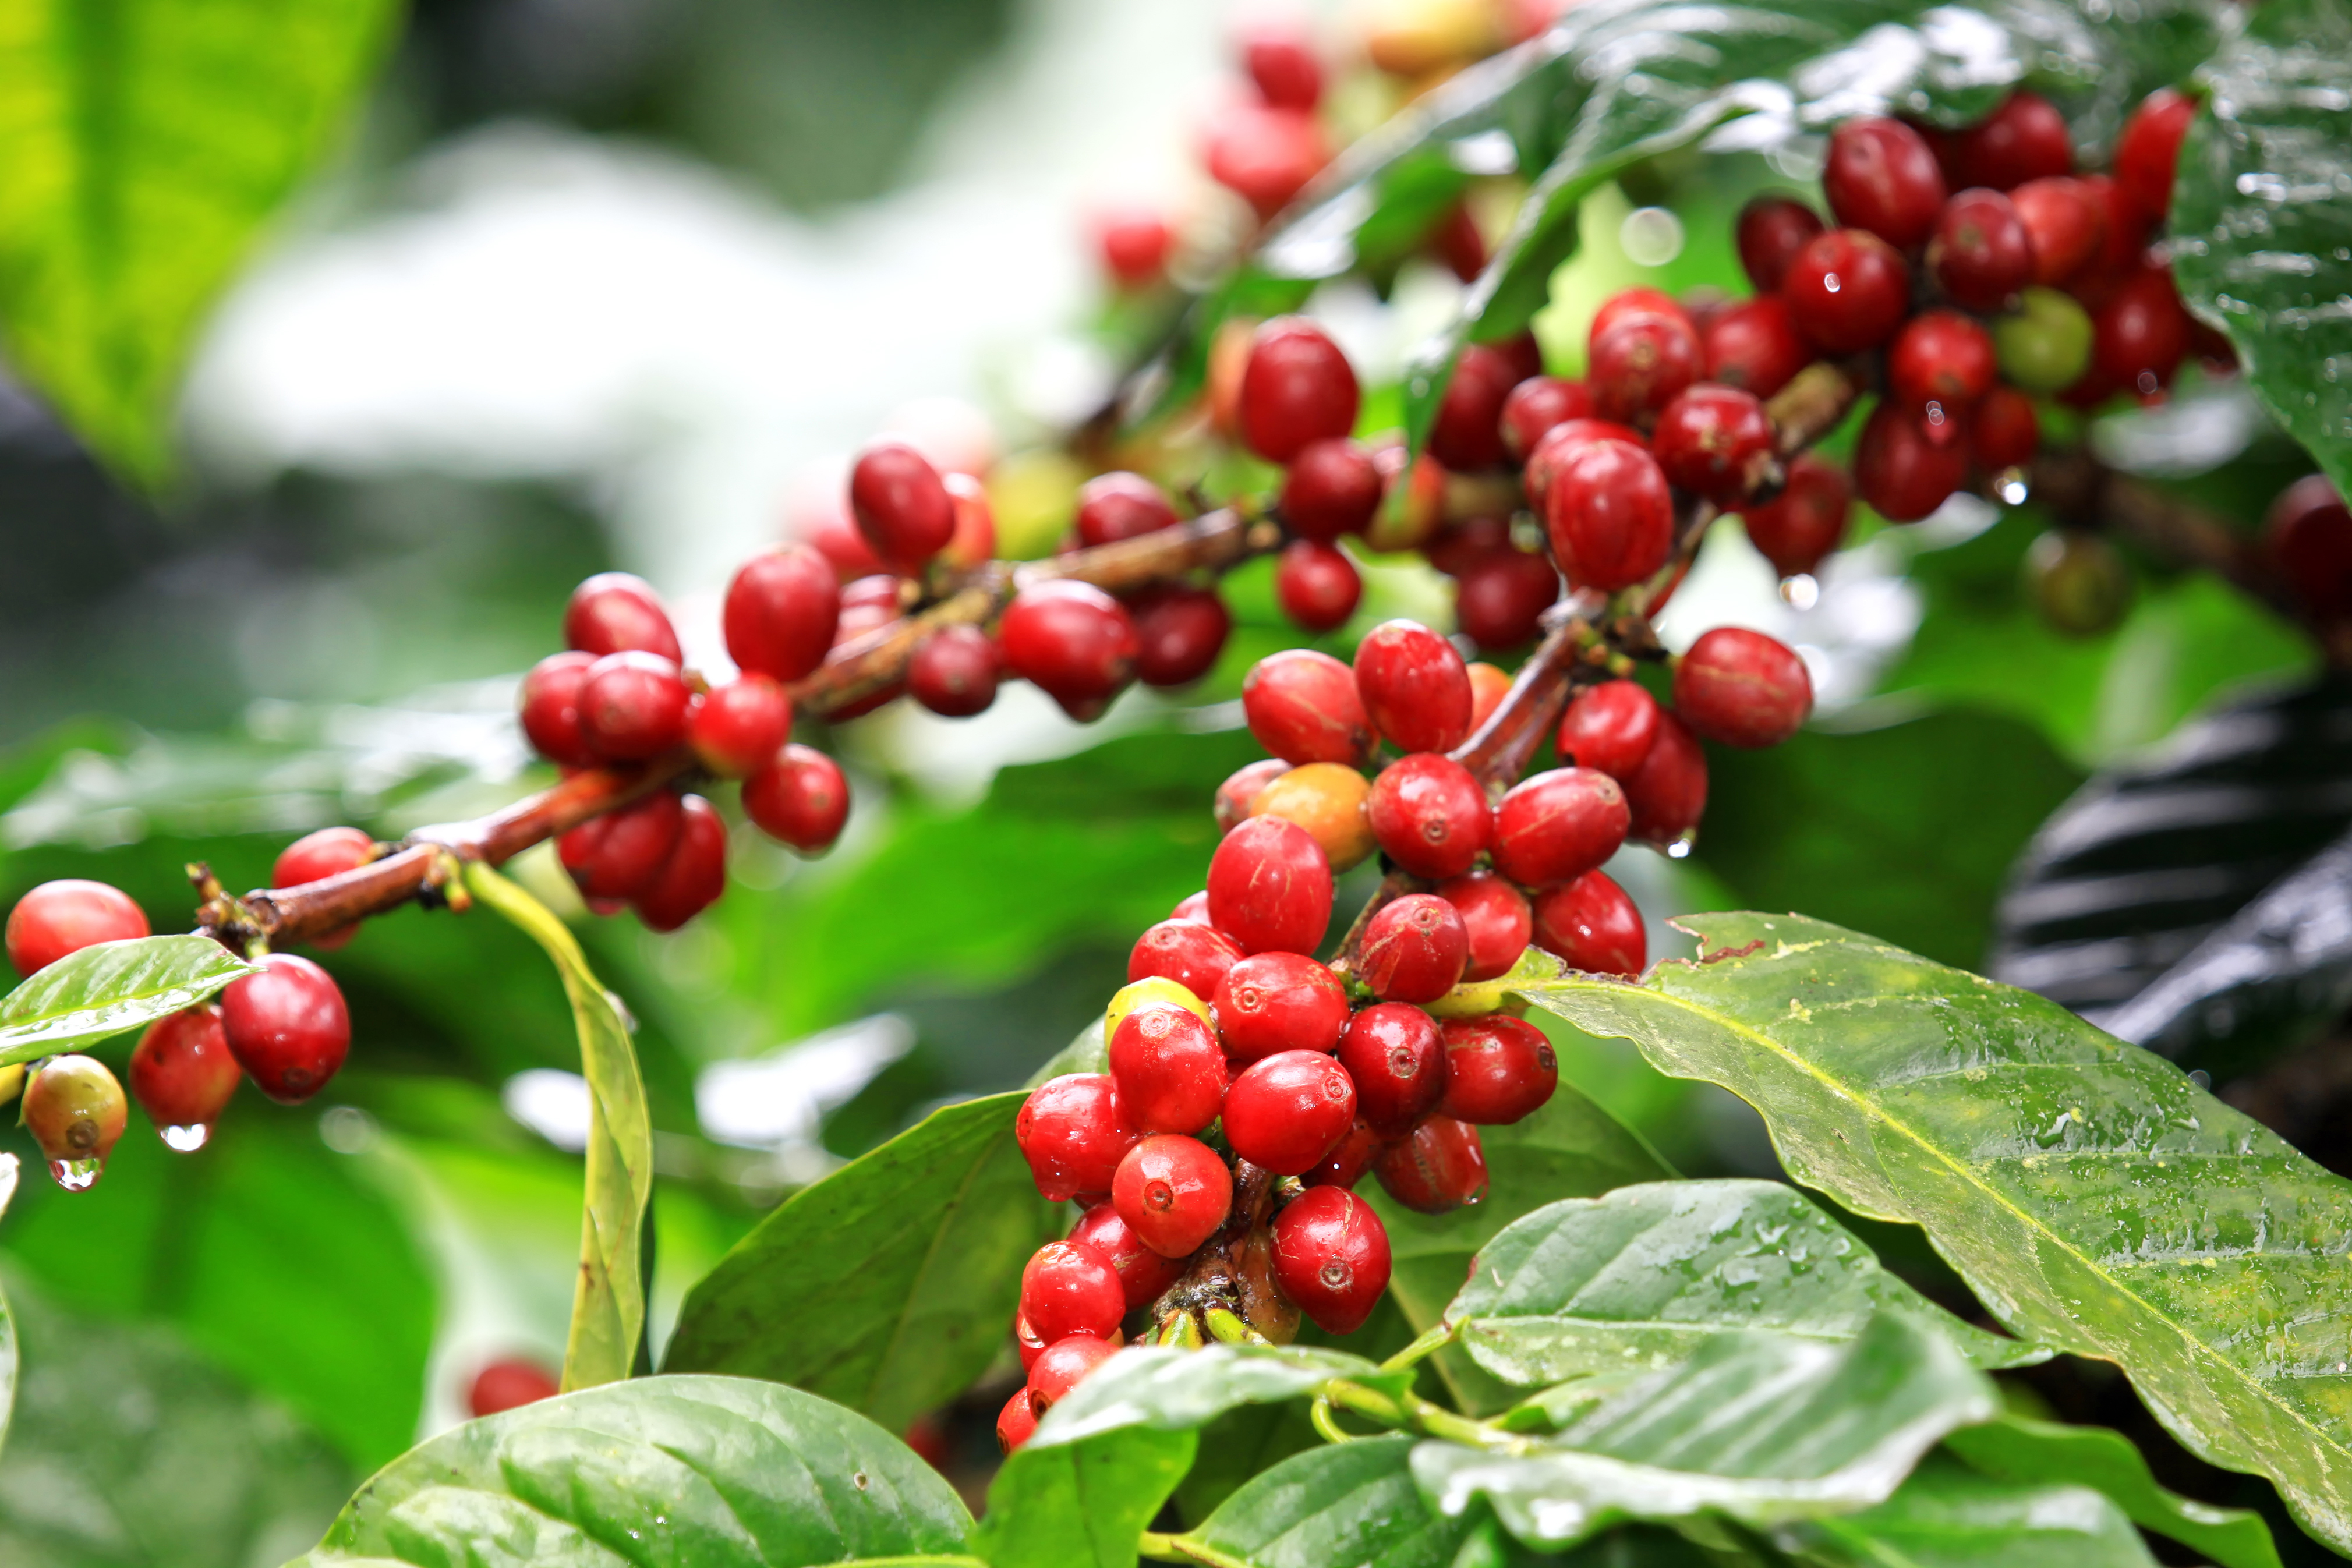 Coffee beans ripening, fresh coffee,red